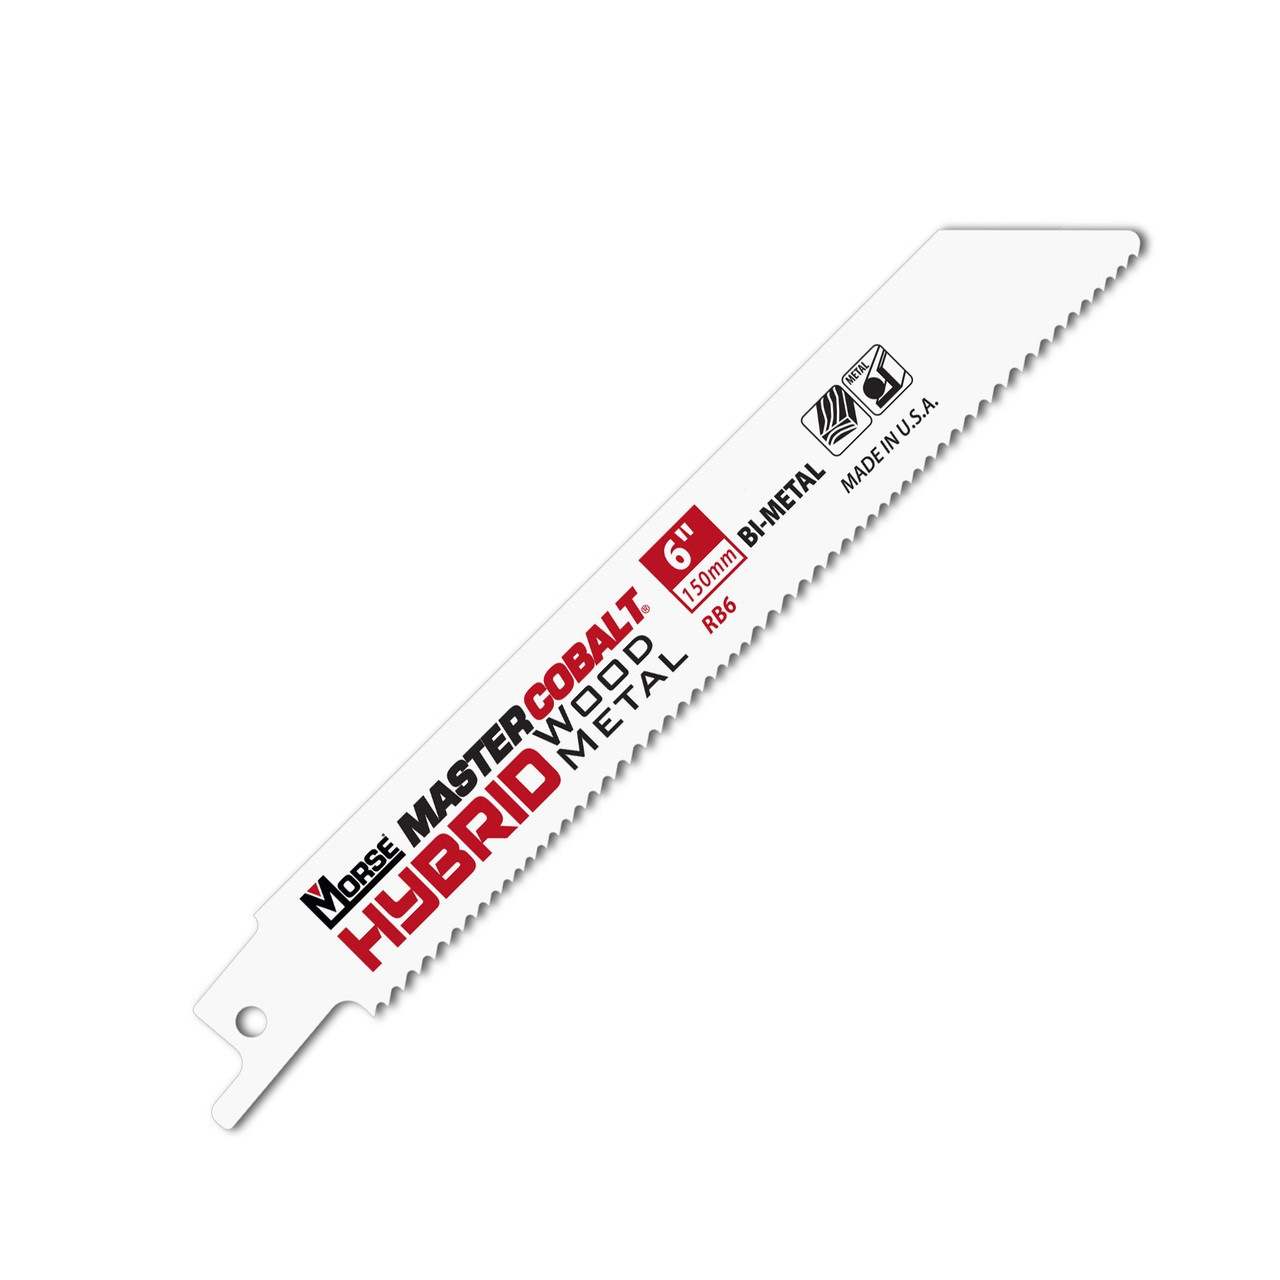 6 inch sawsall blade for wood or metal